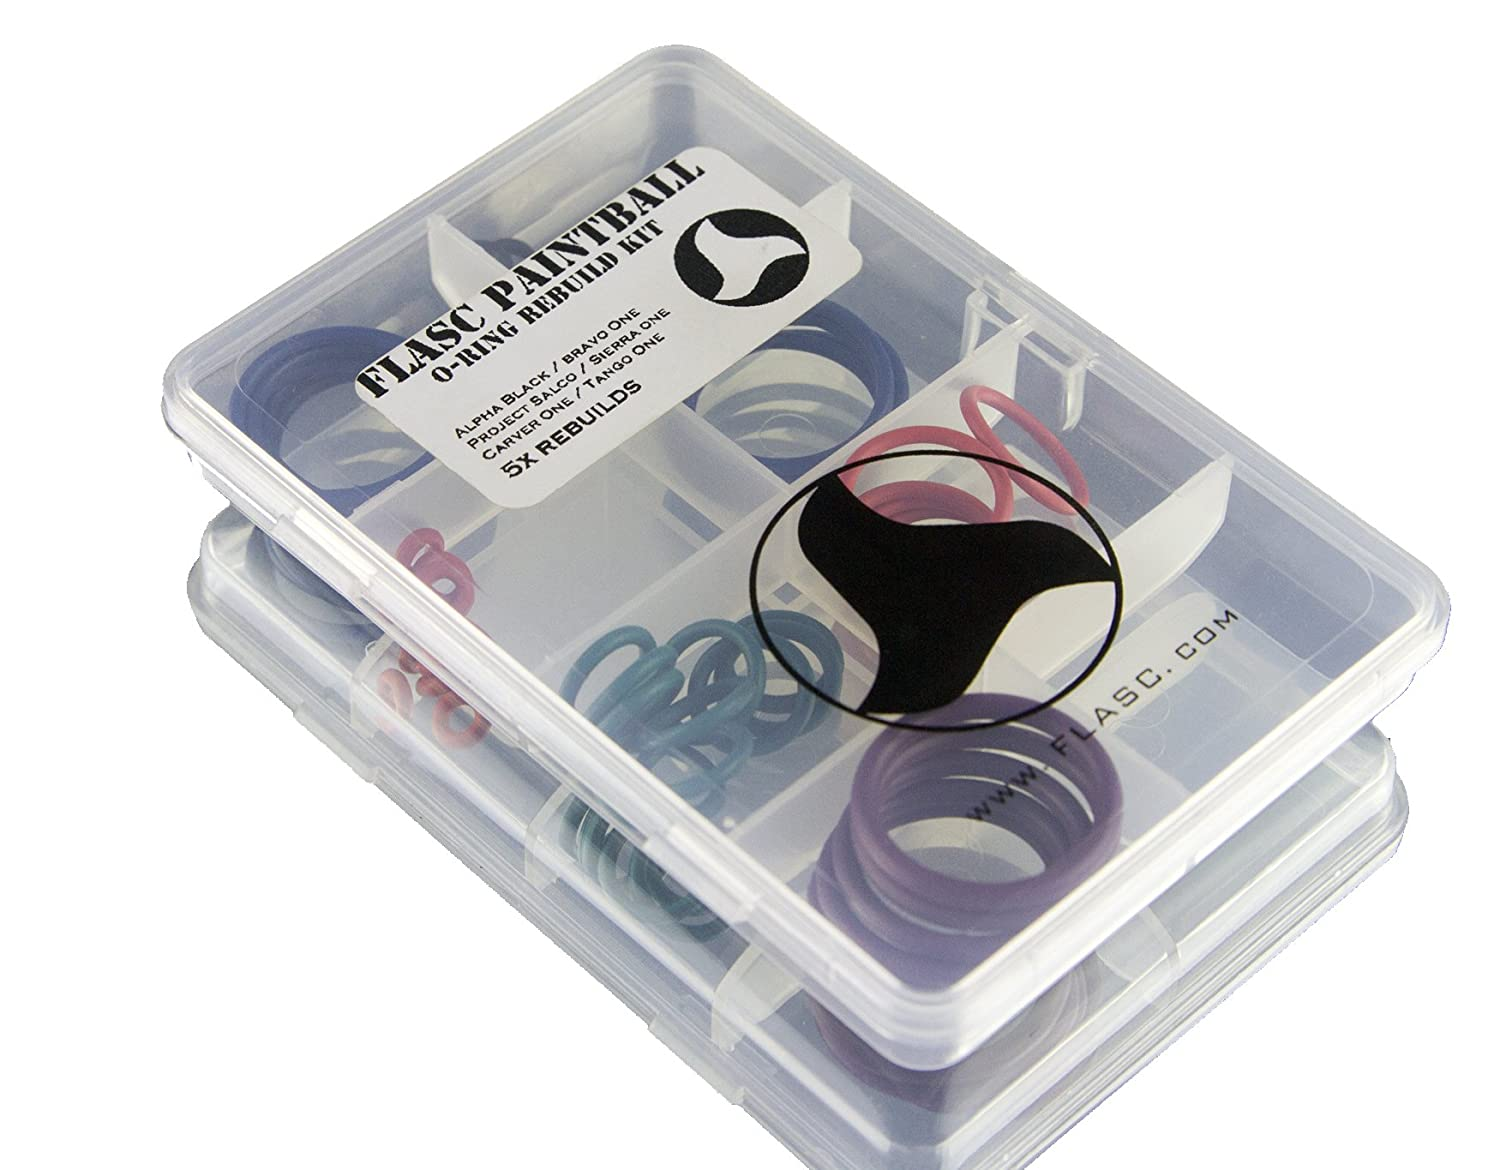 Tippmann Alpha Black Bravo One 5x color coded paintball o-ring rebuild kit by Flasc Paintball